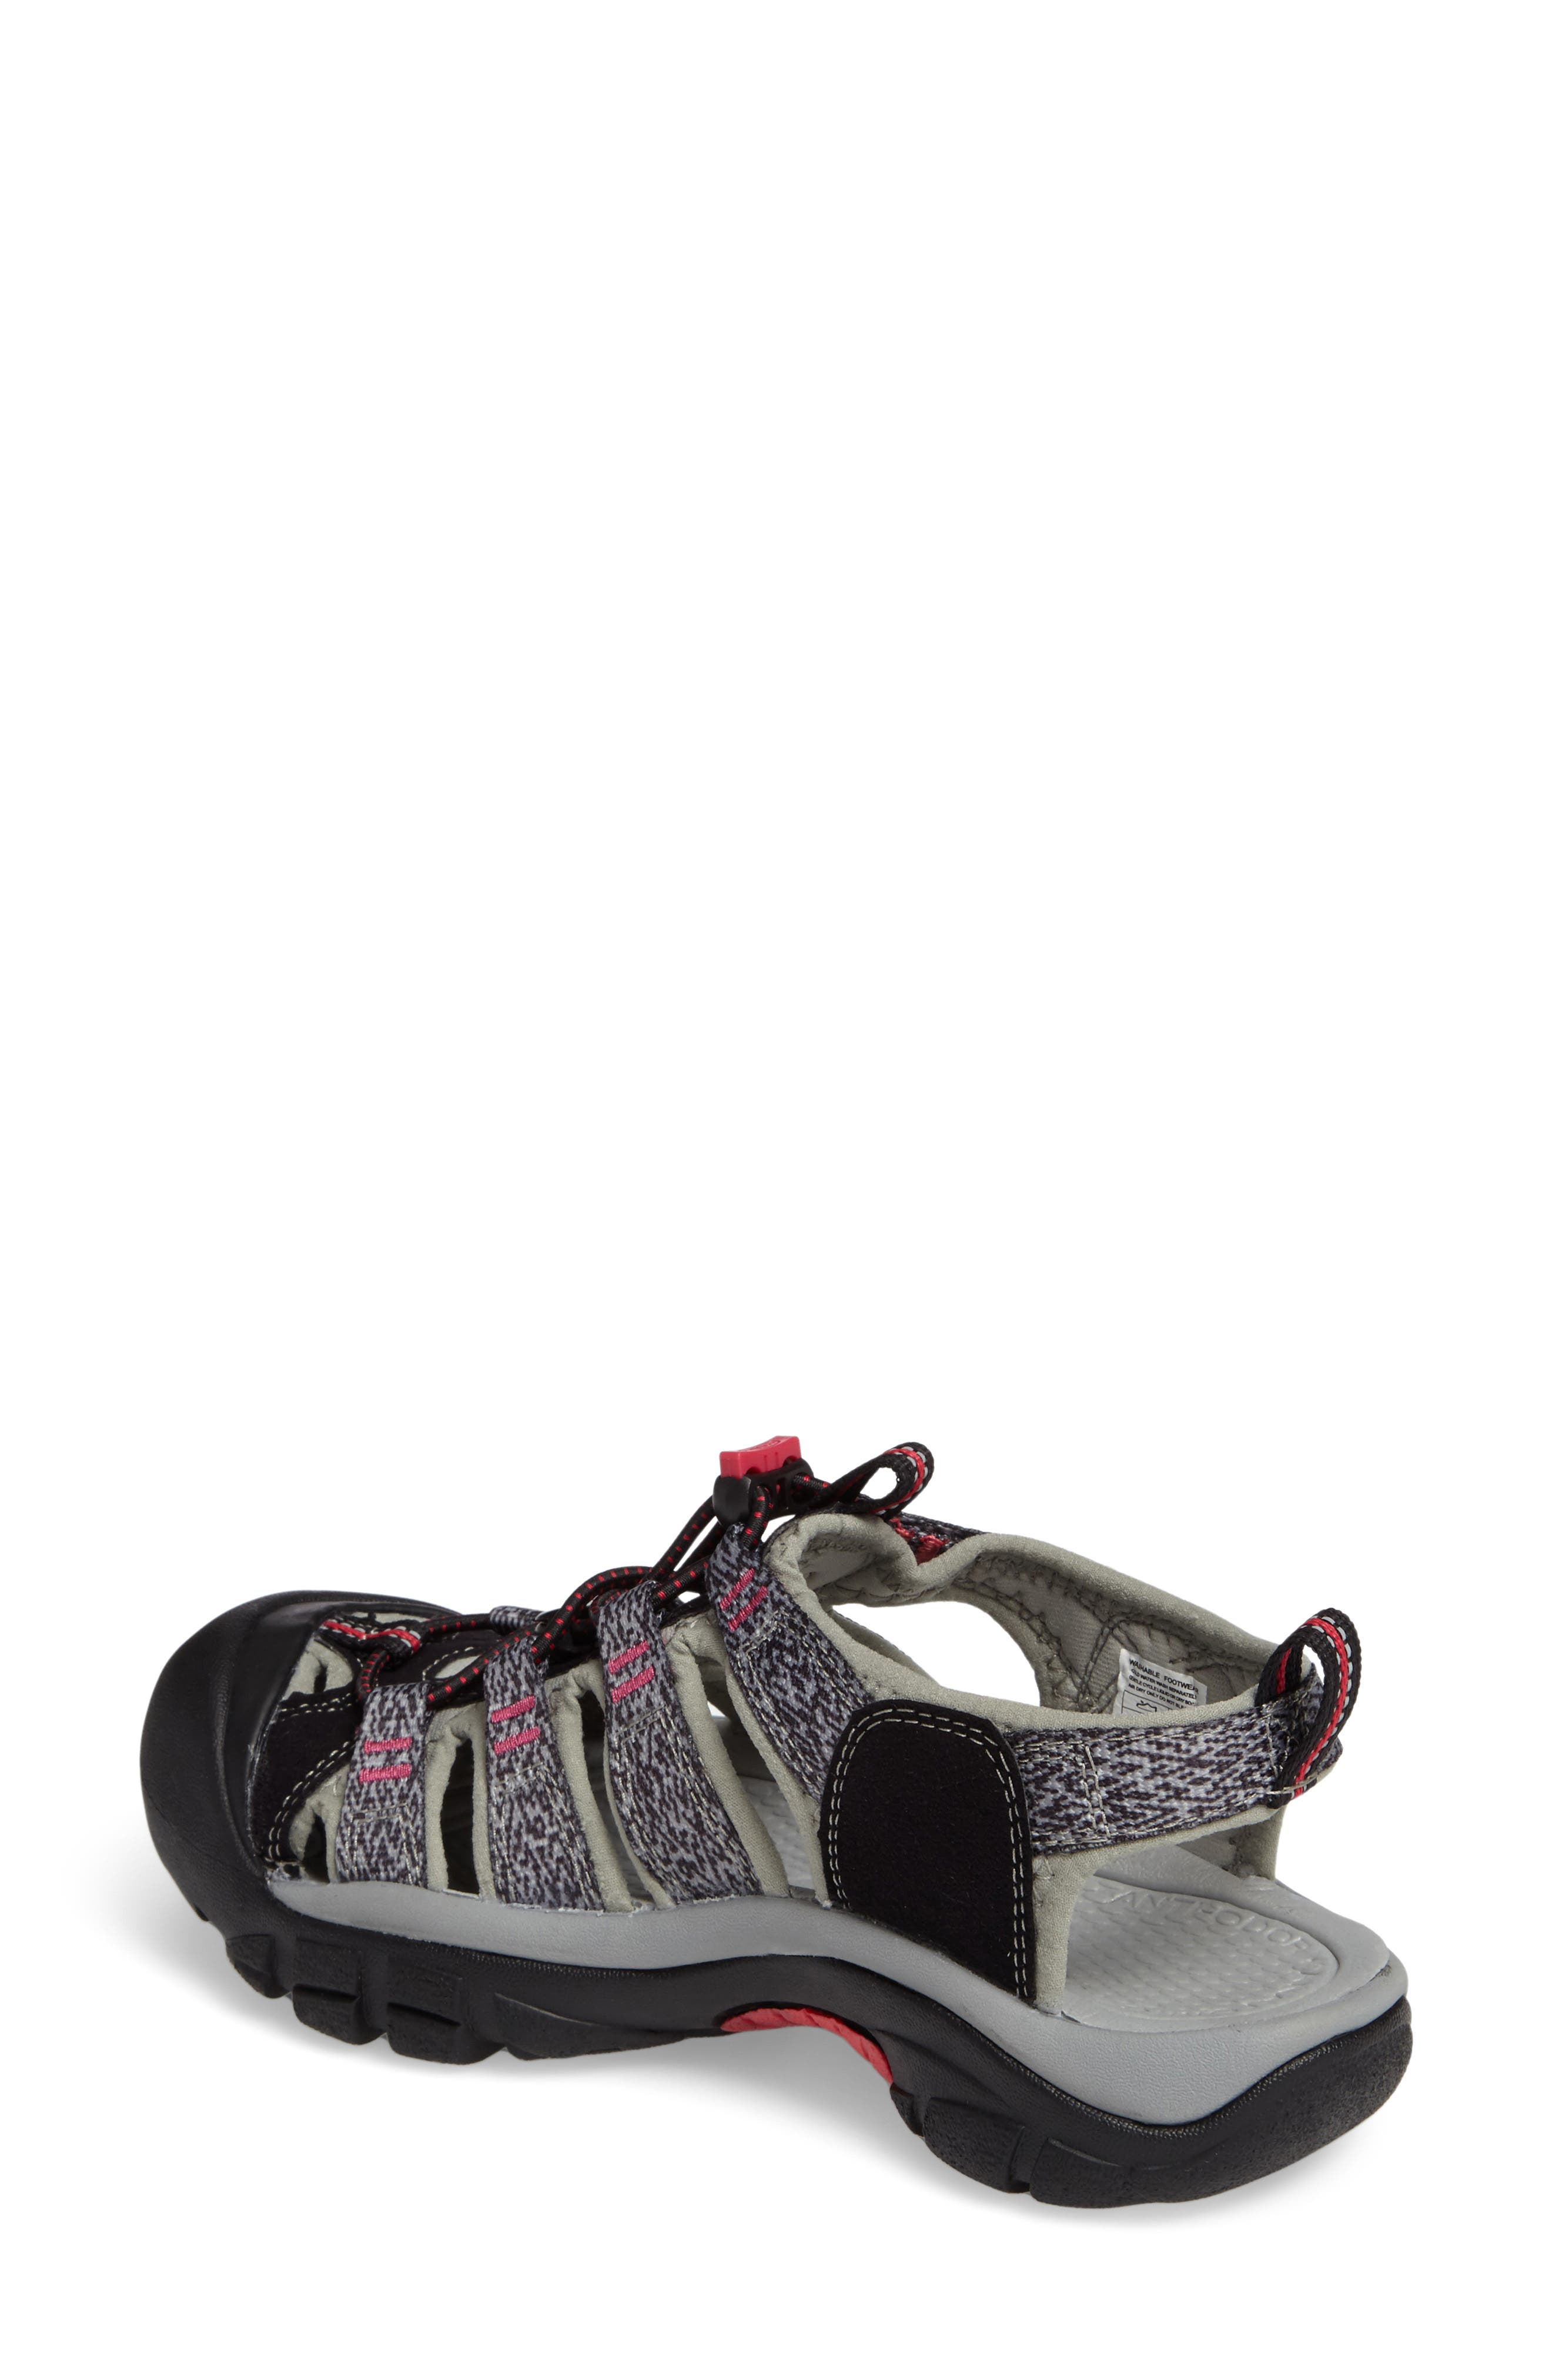 'Newport H2' Sandal,                             Alternate thumbnail 2, color,                             BLACK/ BRIGHT ROSE FABRIC